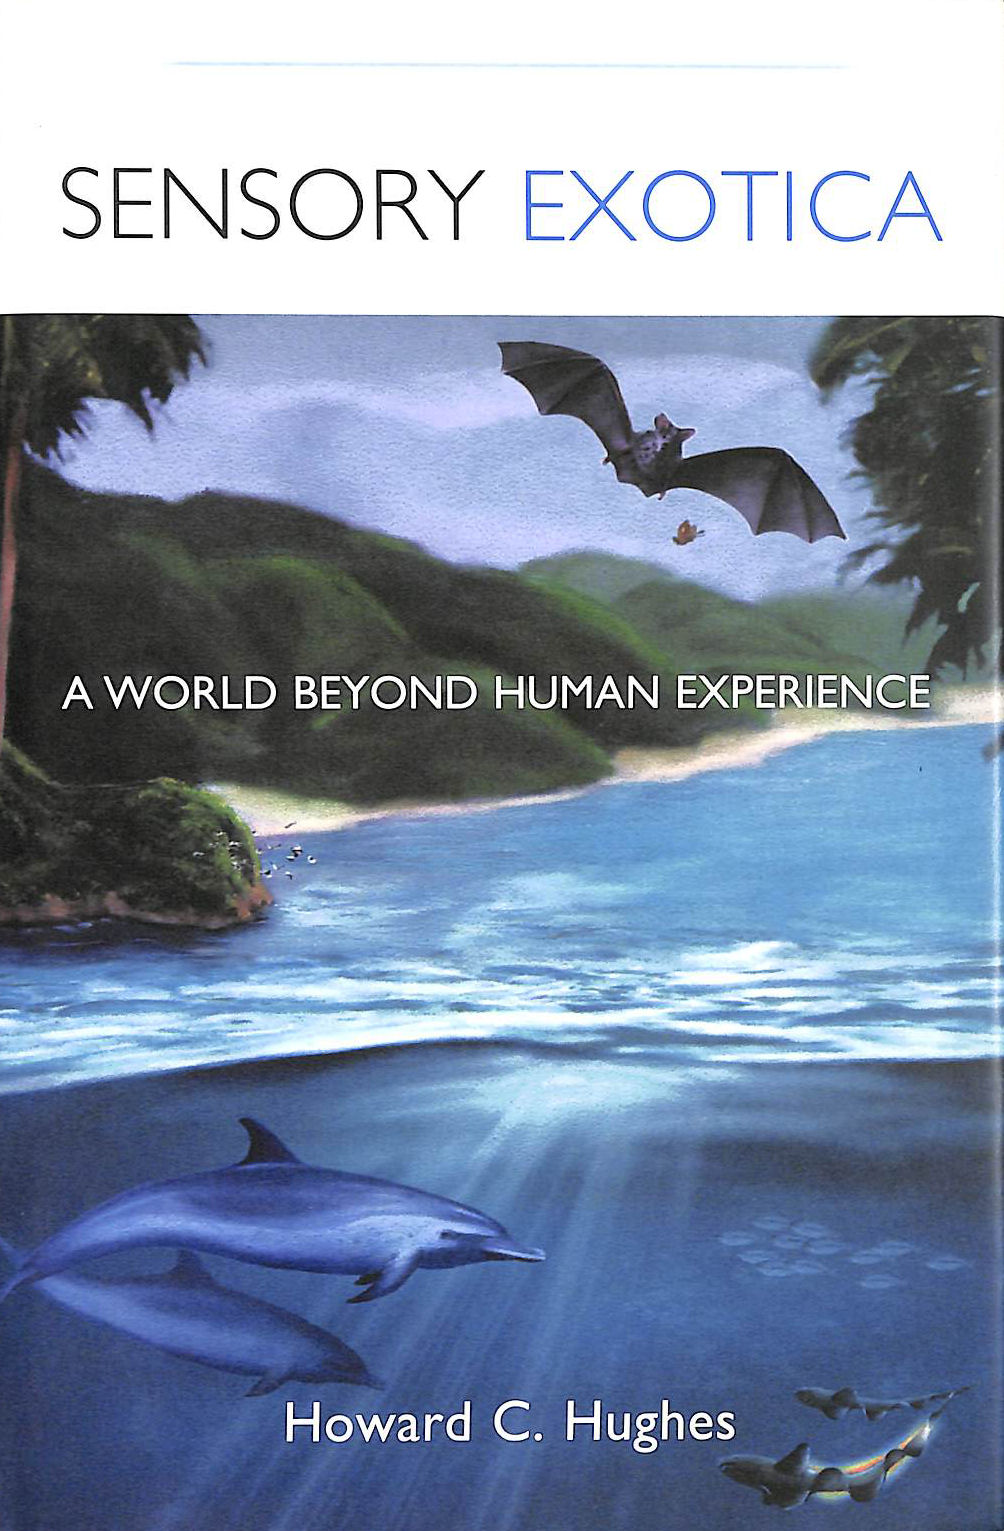 Image for Sensory Exotica: A World Beyond Human Experience (A Bradford book)